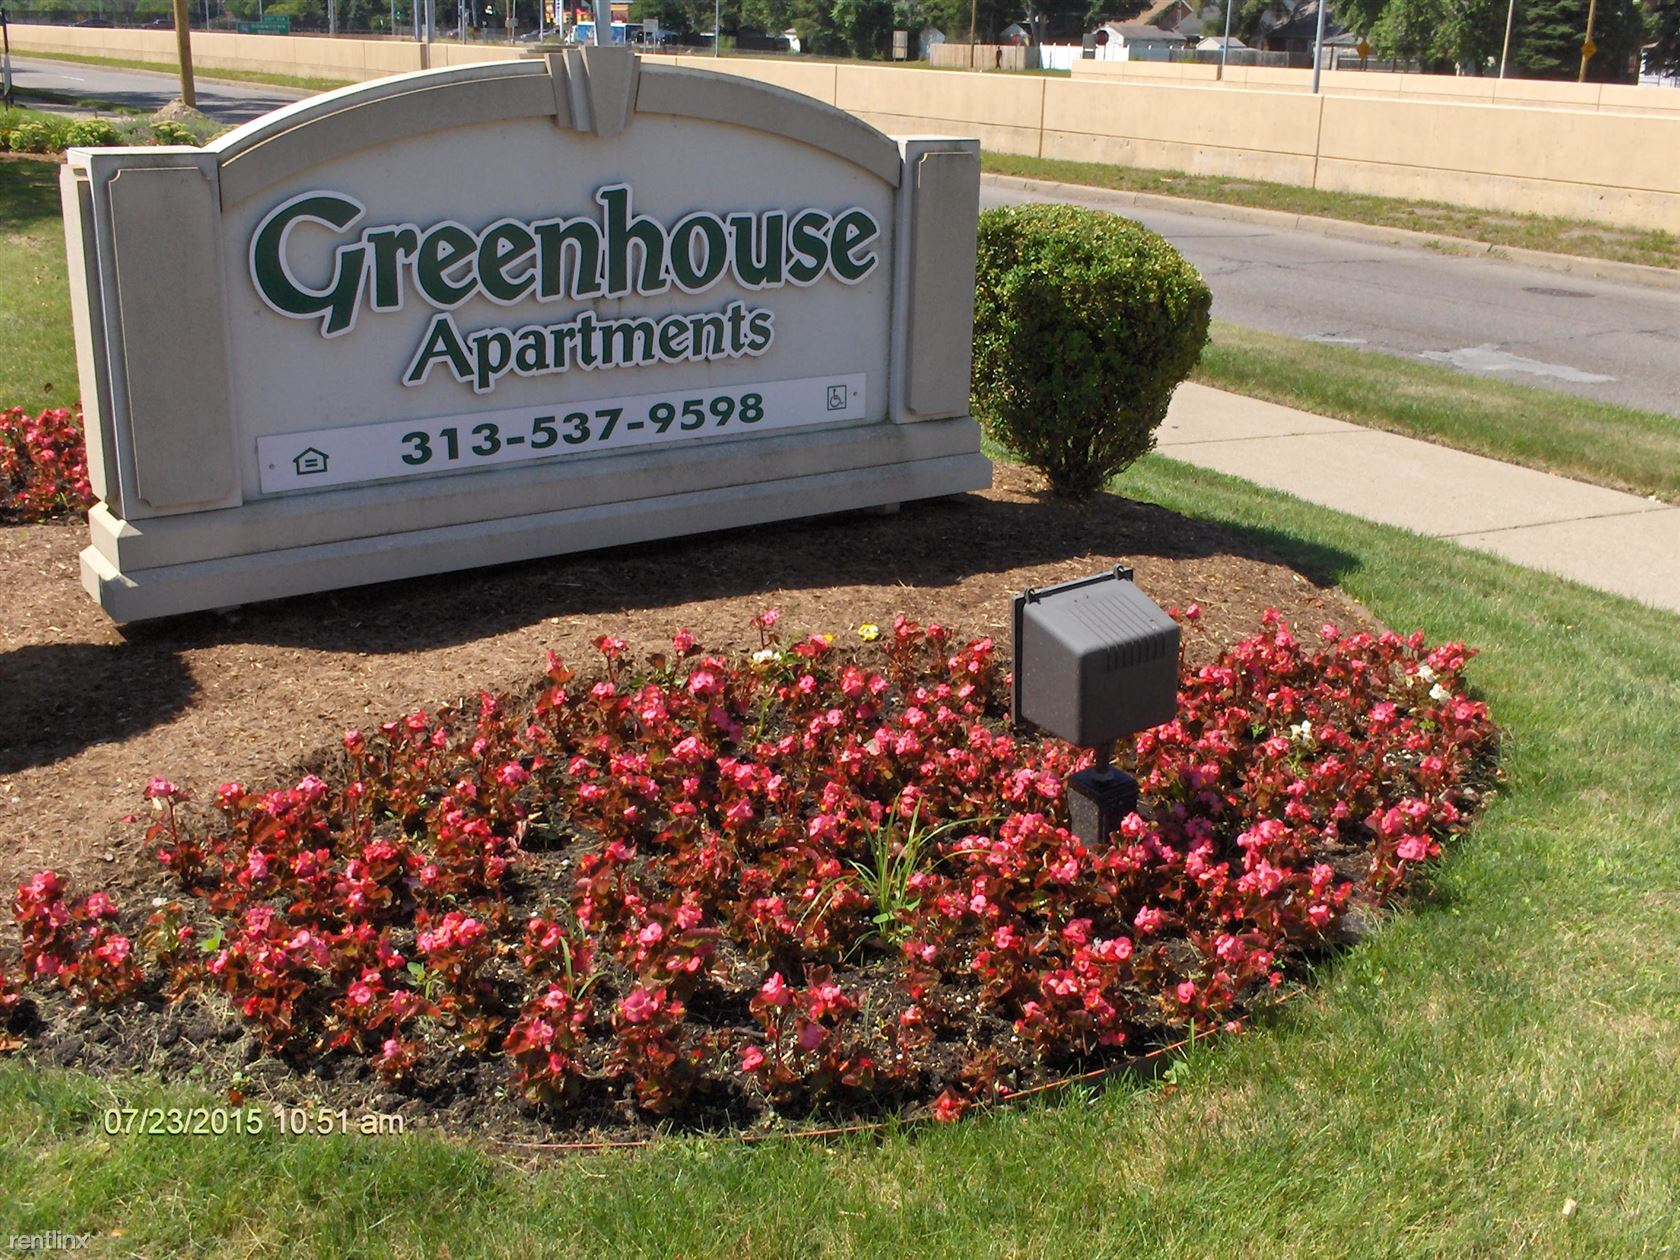 Greenhouse Apartments